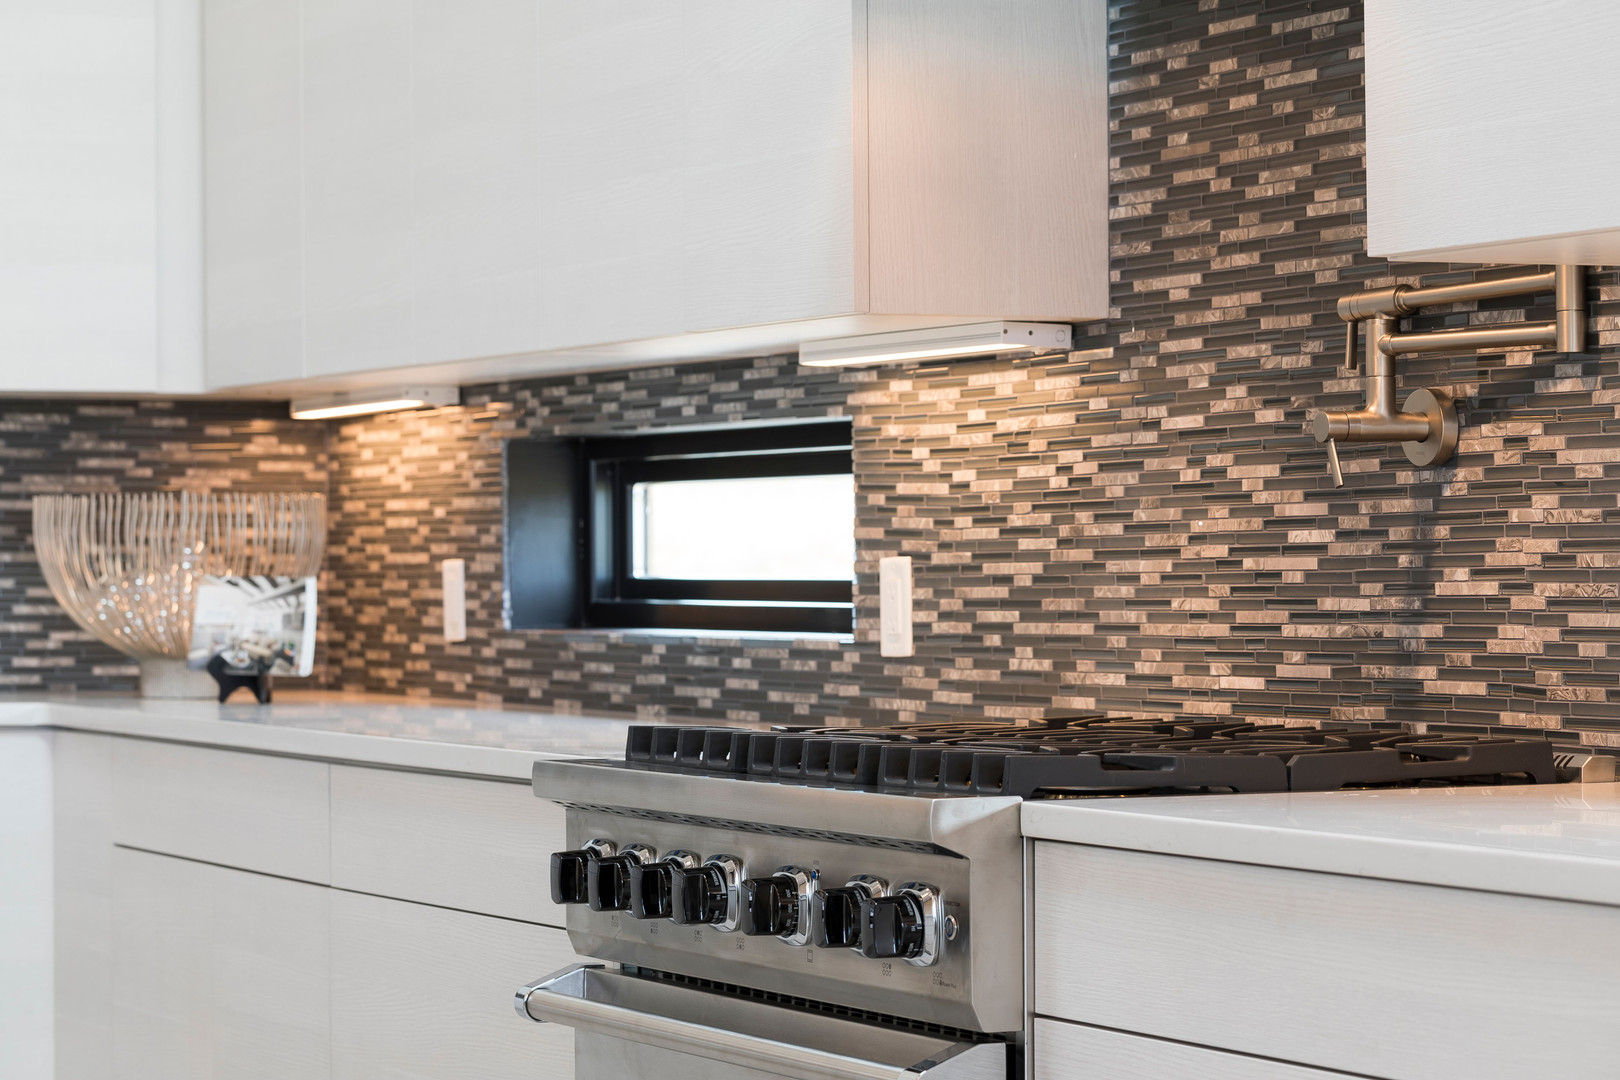 Abierto | Kitchen Backsplash and Range